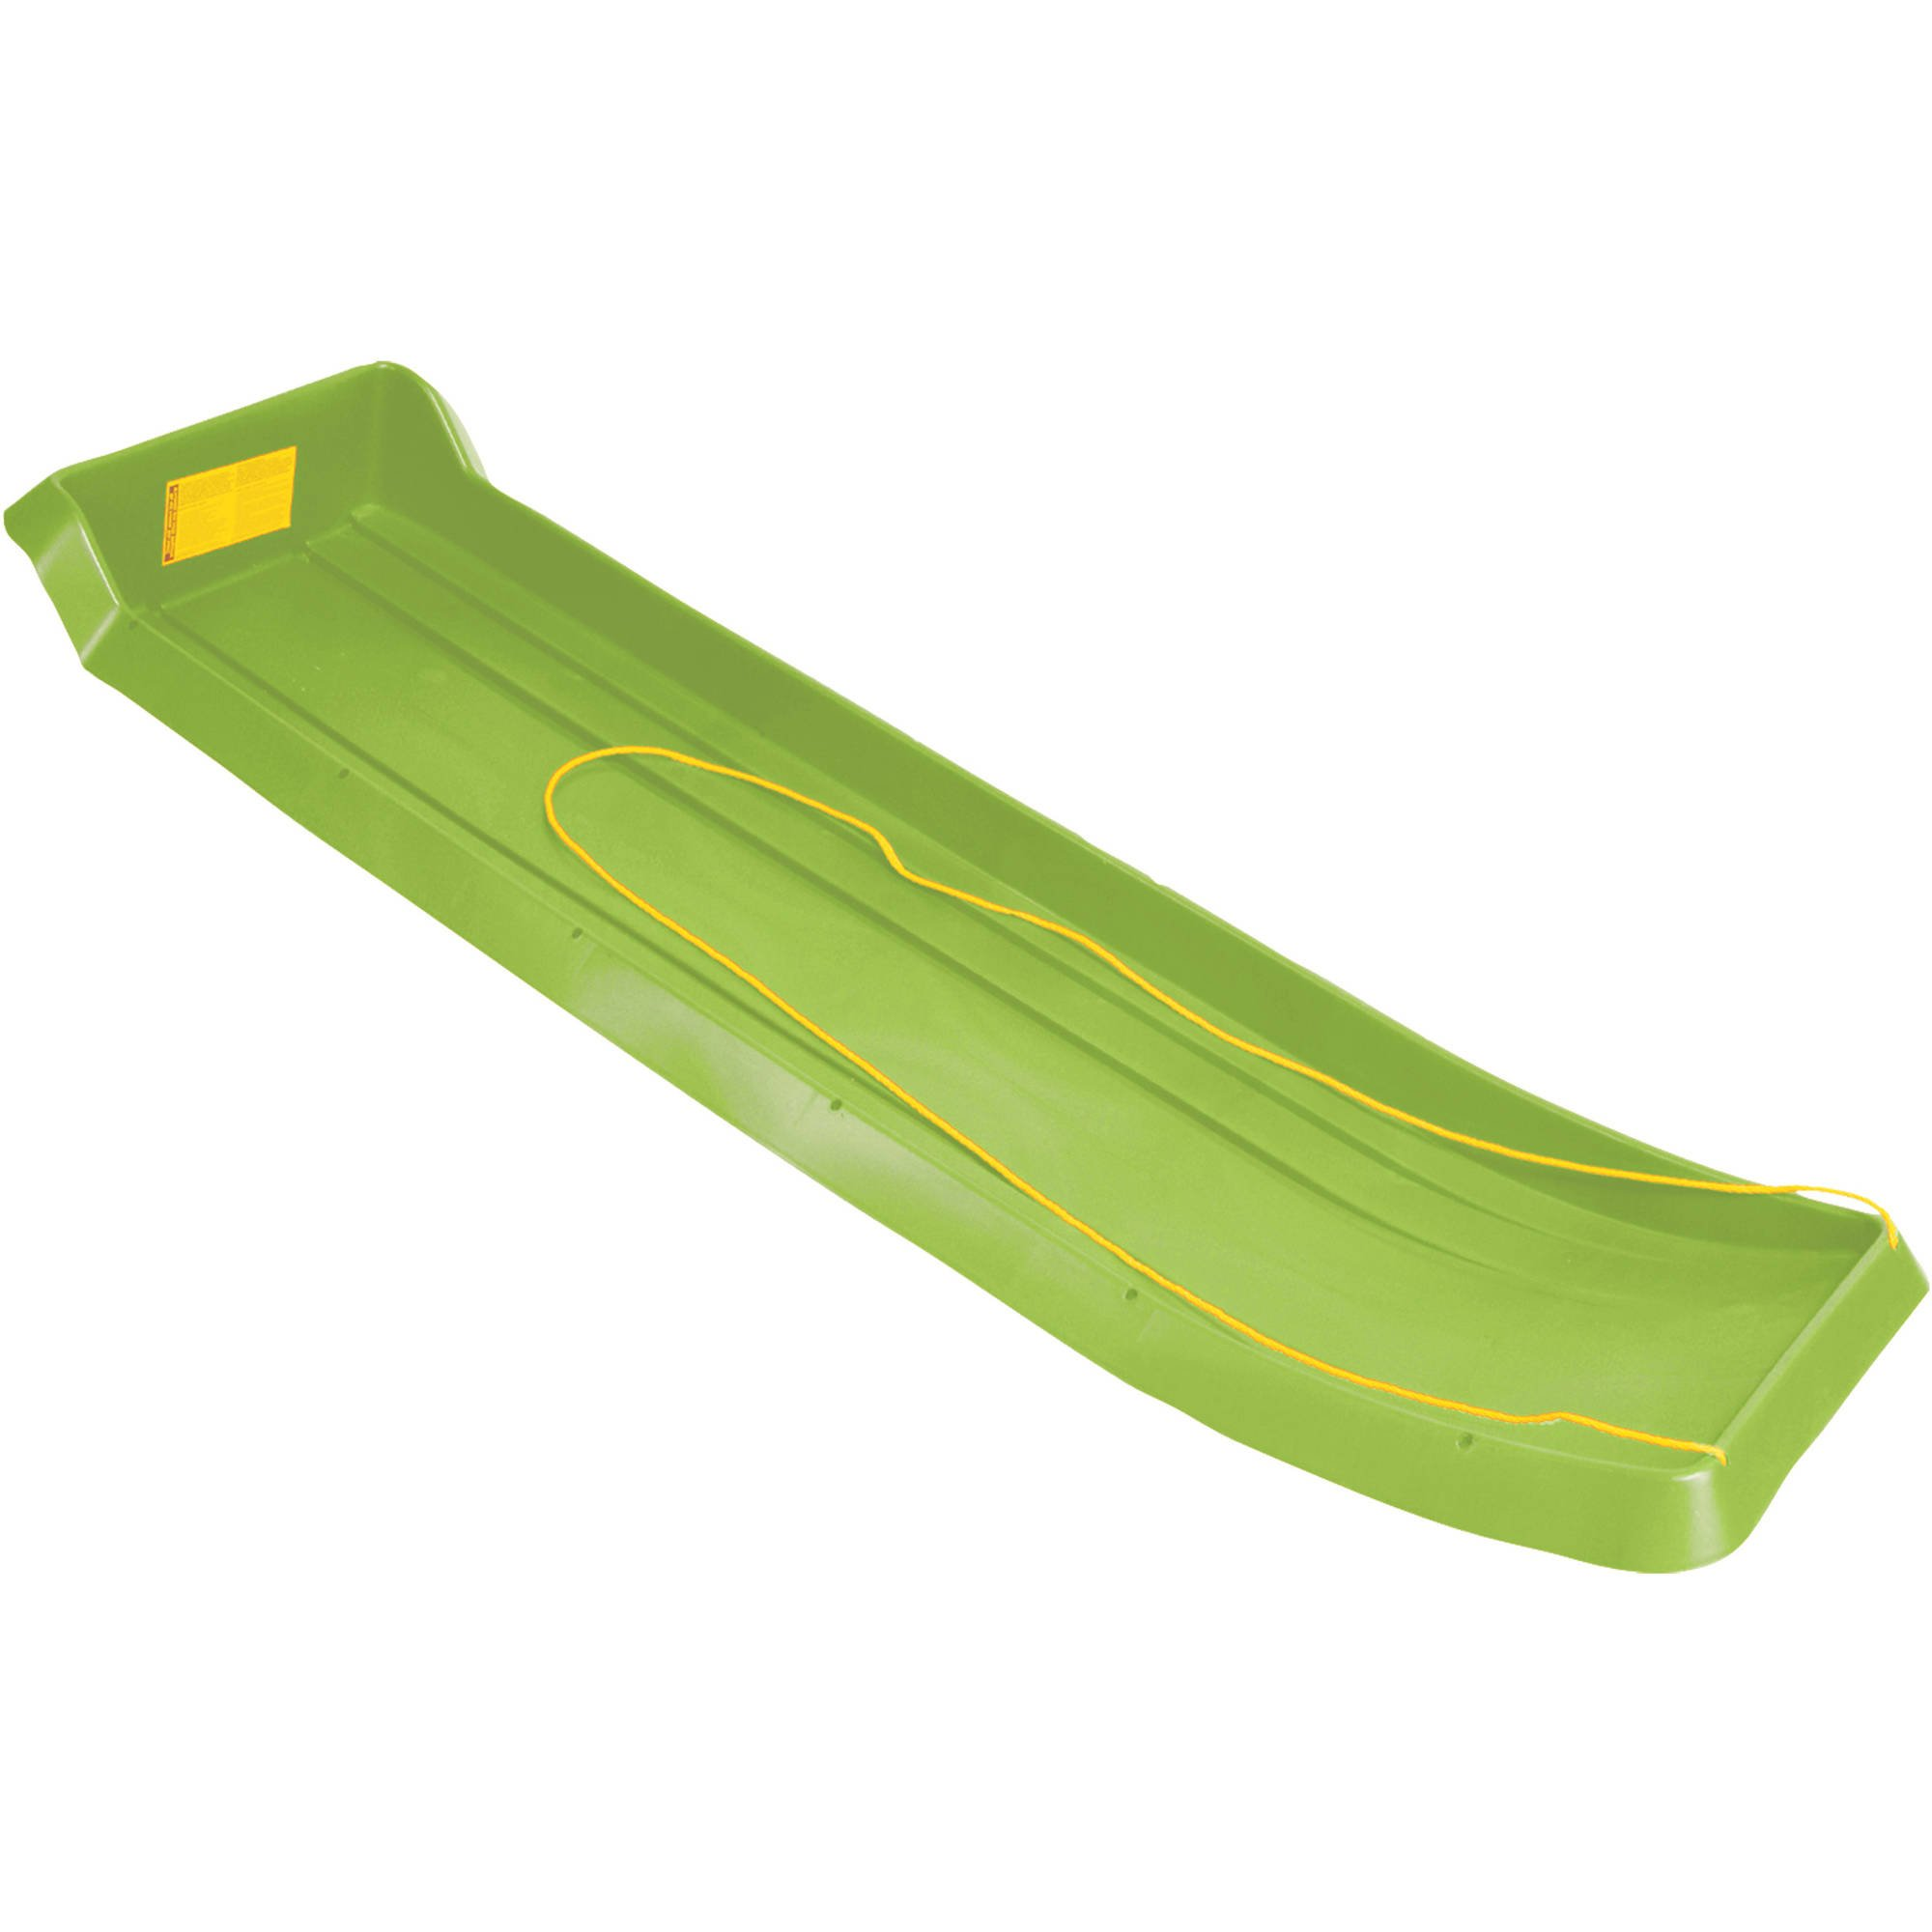 Emsco ESP Series 66 in. Family Fun 4-Rider Toboggan Sled in Lime Green